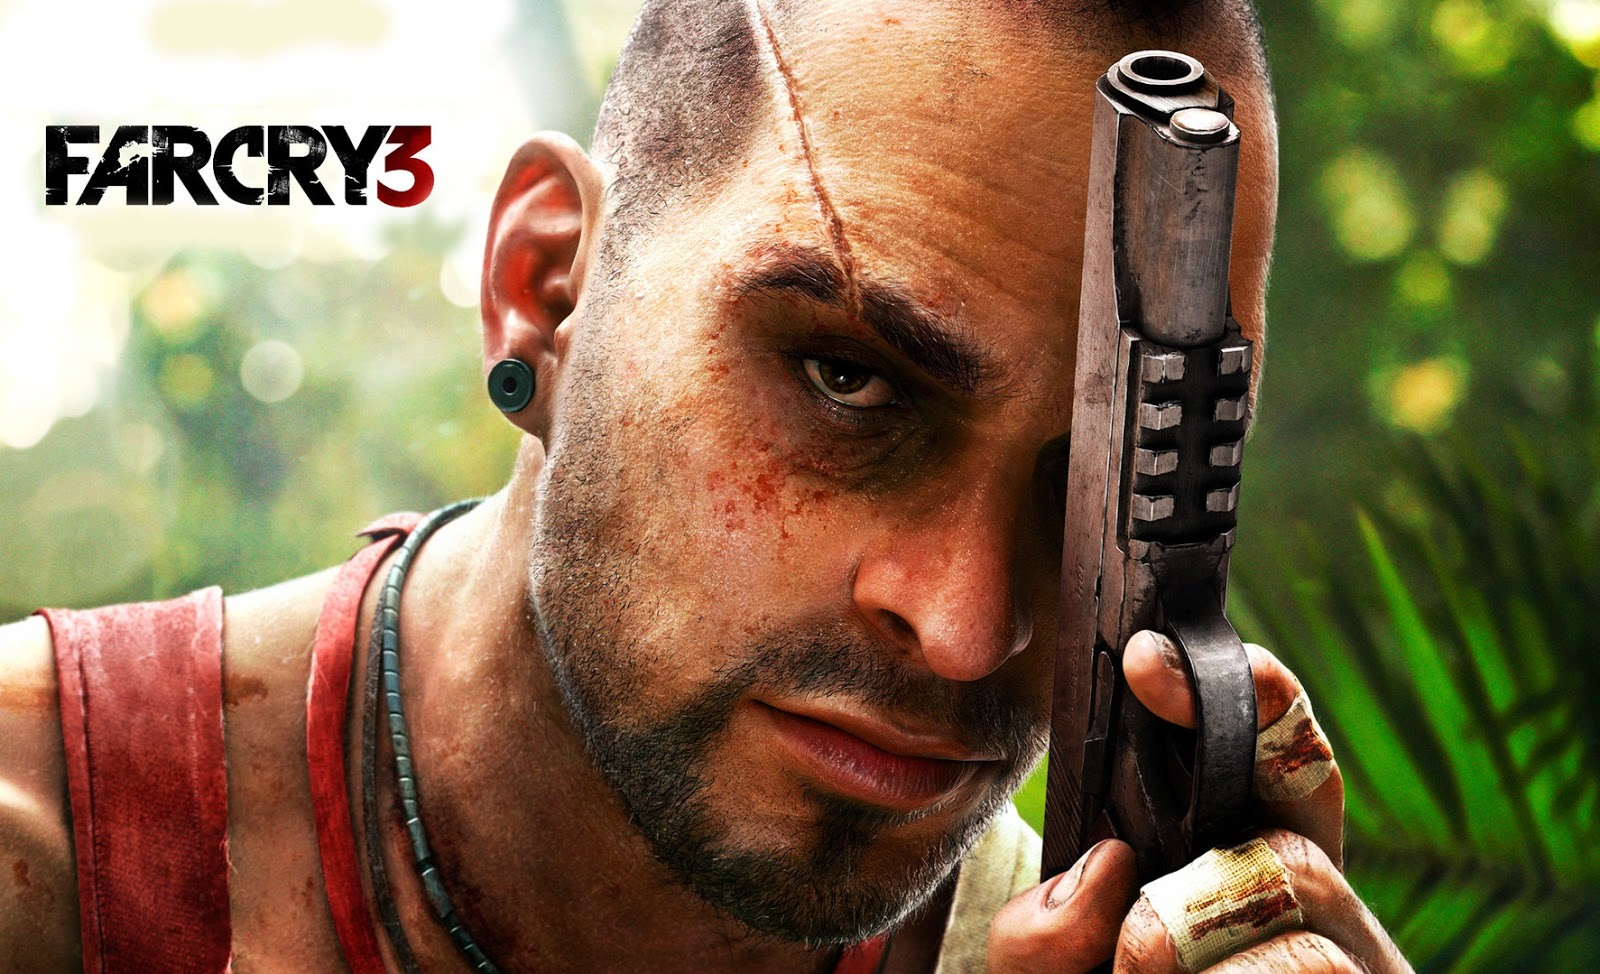 far cry 5 download for pc highly compressed